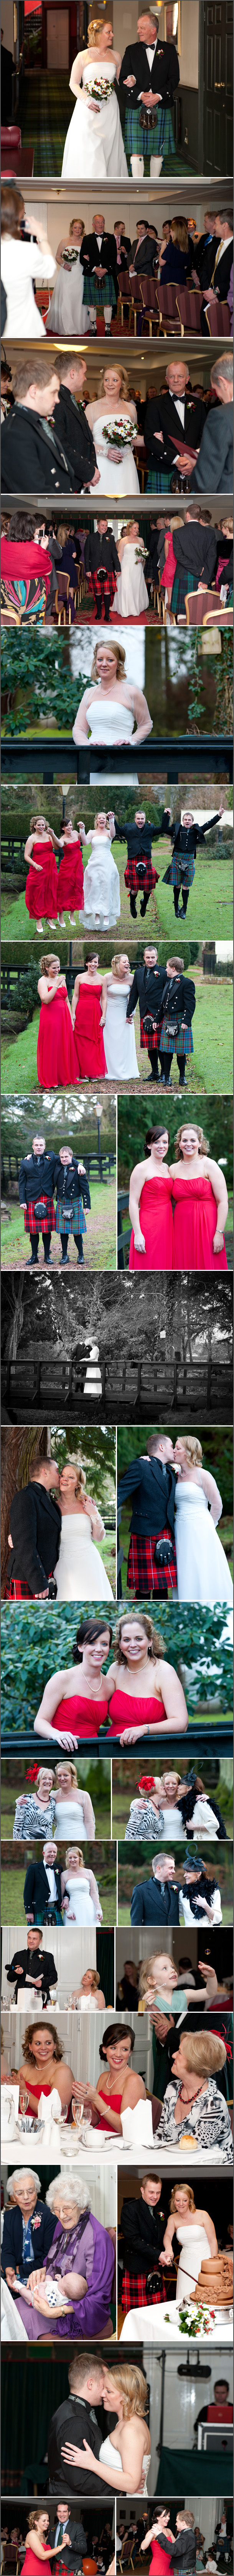 Jane & Robs Wedding at Huntingtower Hotel, Perth